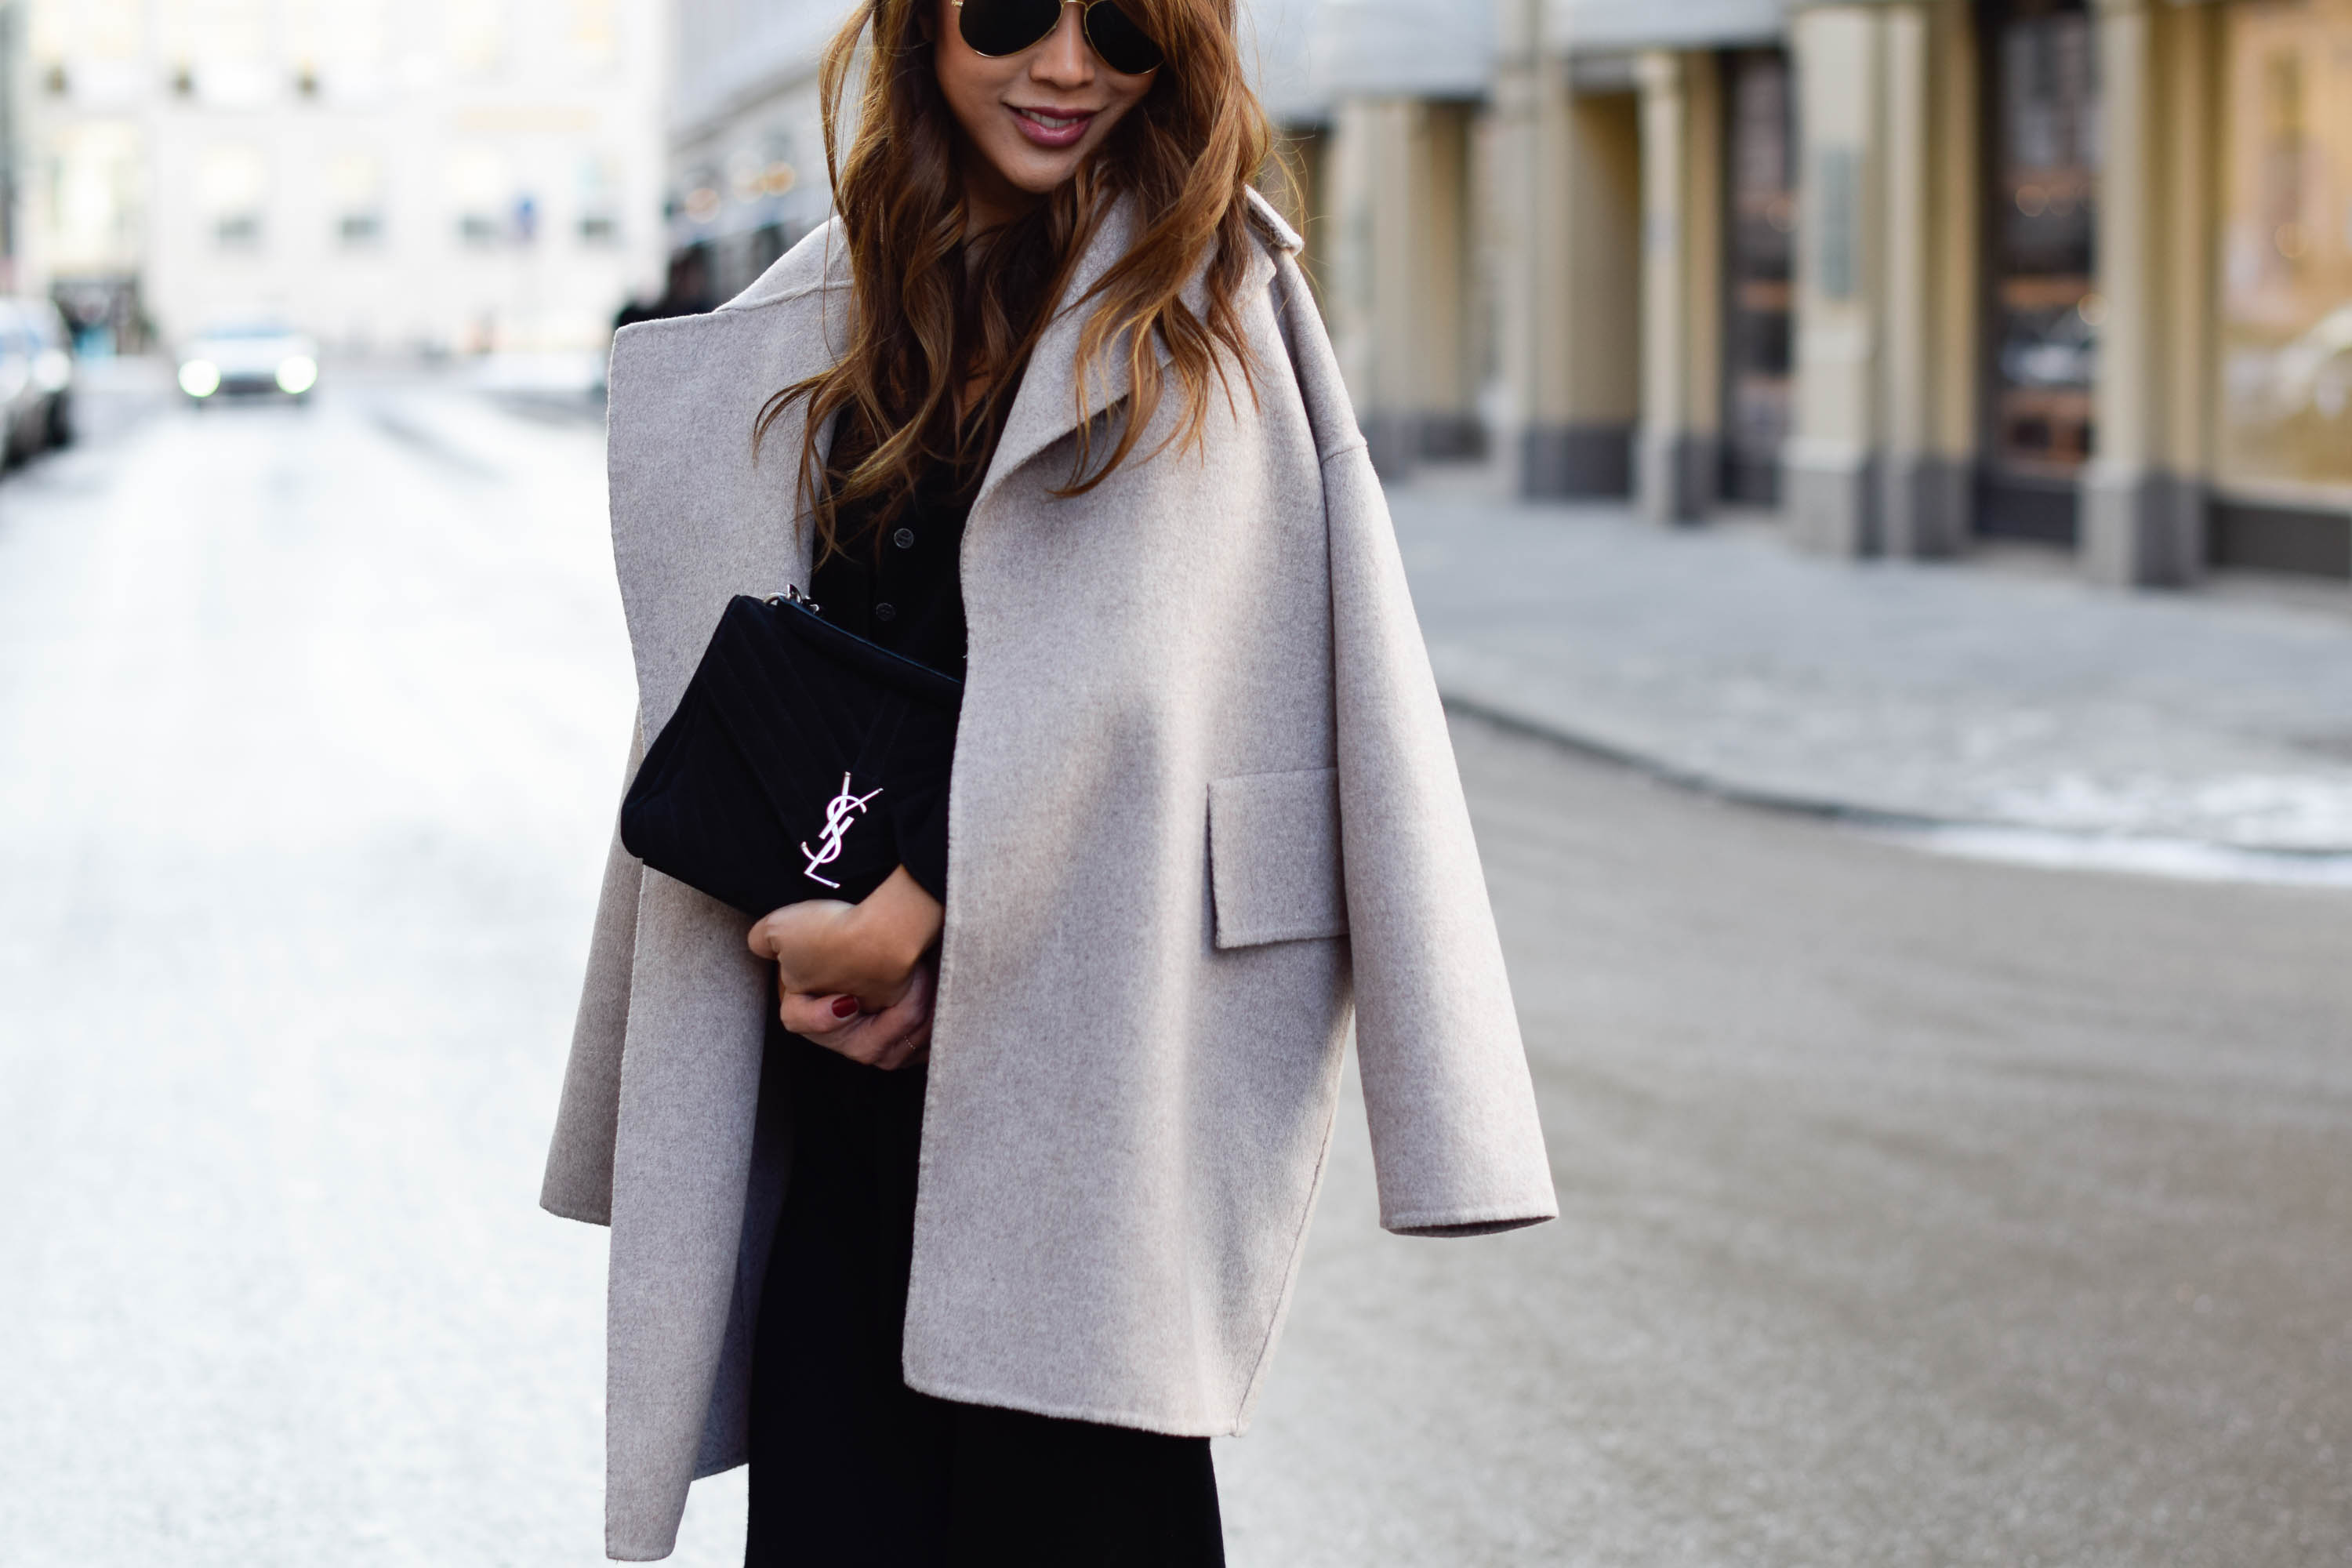 Oversize Cashmere Coat And Ysl Bag The Classy Cloud